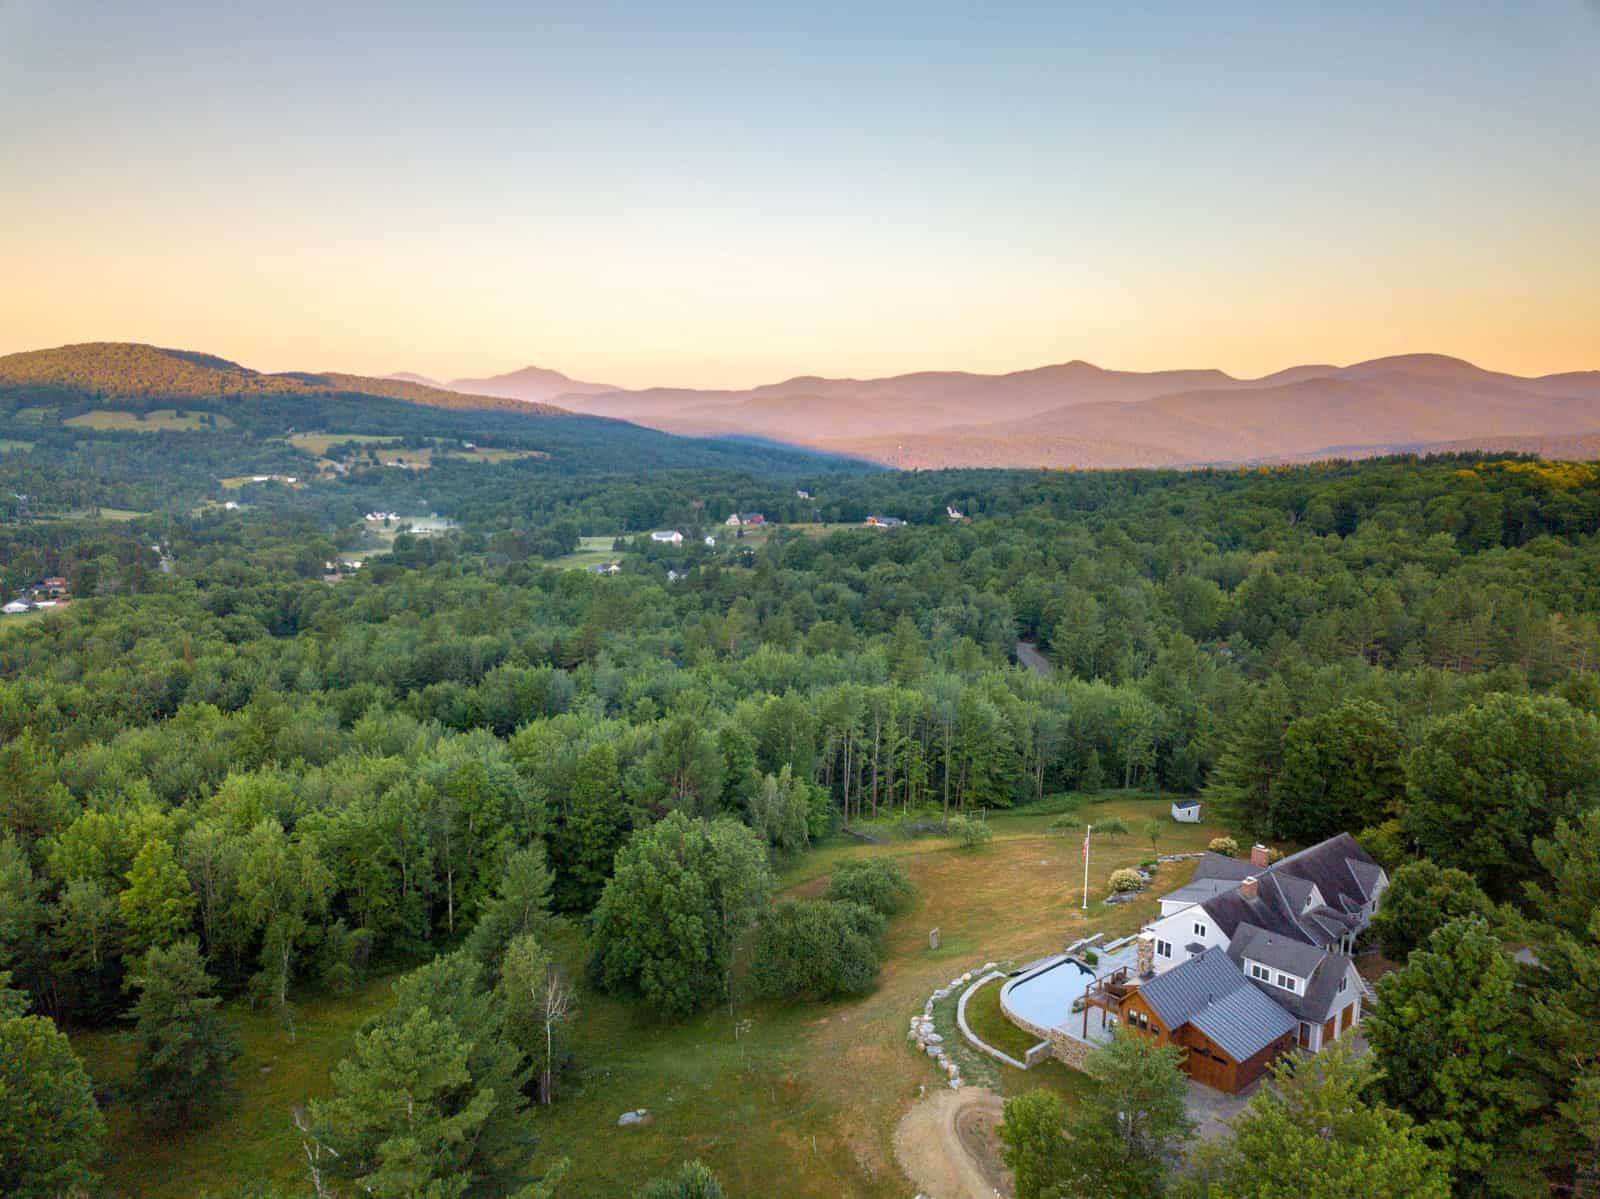 house in Stowe, VT aerial drone photo during sunrise with mountains in background